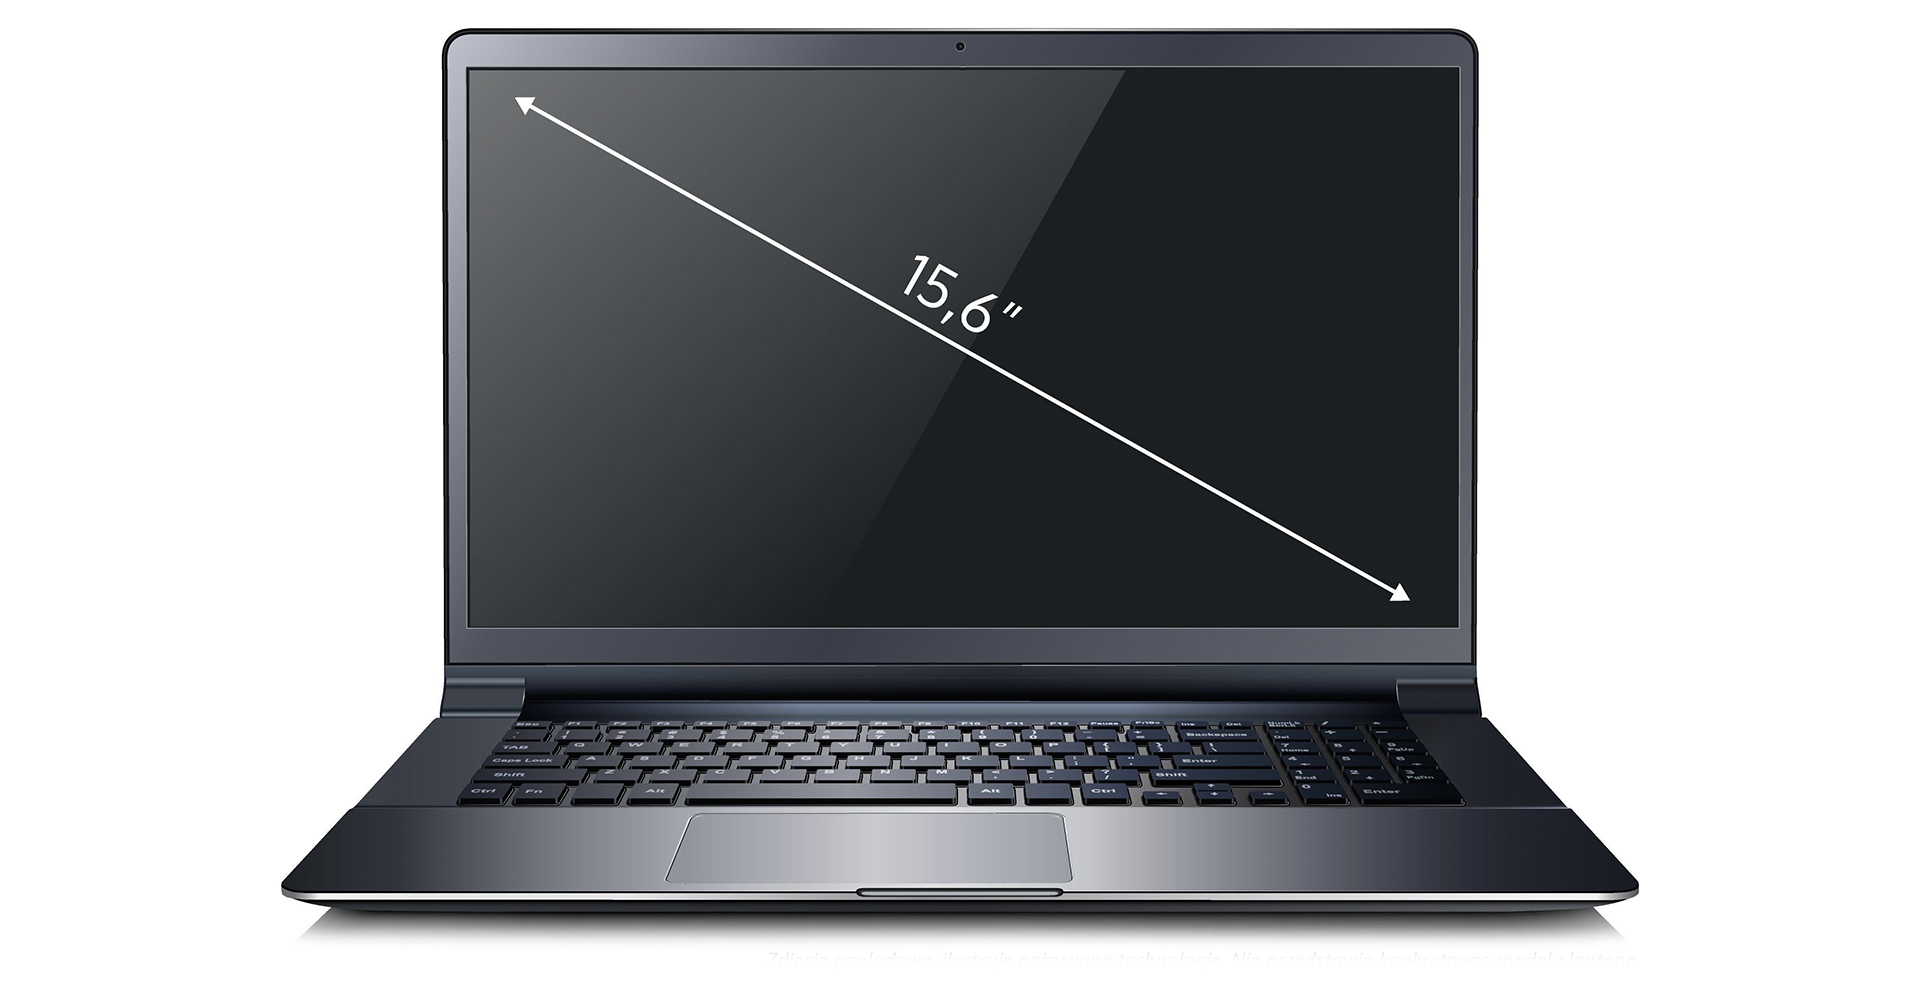 Lenovo IdeaPad 330-15IKBR (81DE02BDPB) 8 GB RAM/ 256 GB SSD/ Windows 10 Home                             15.6-tollise diagonaaliga